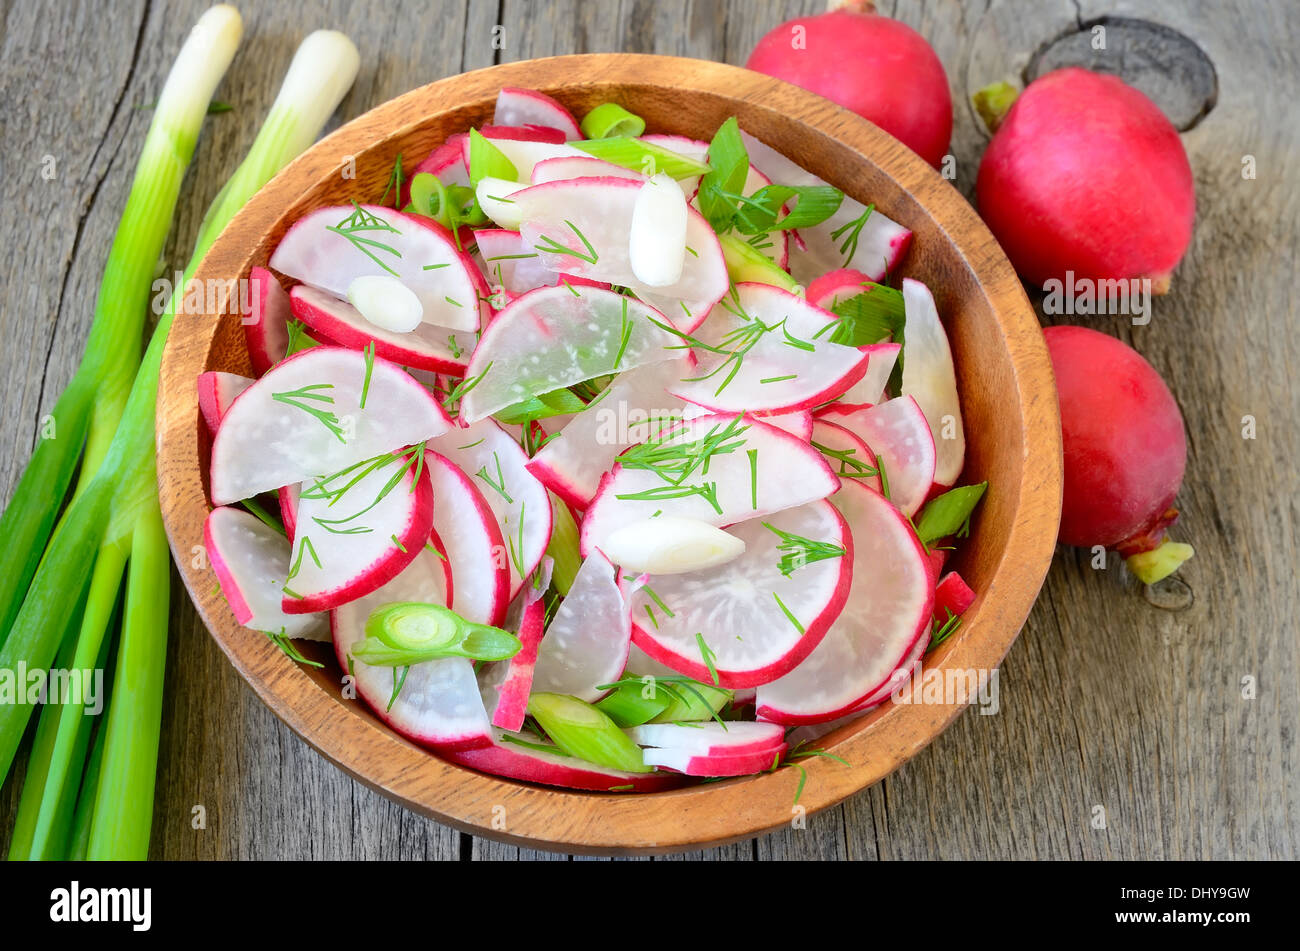 Radish salad in brown bowl on wooden table - Stock Image